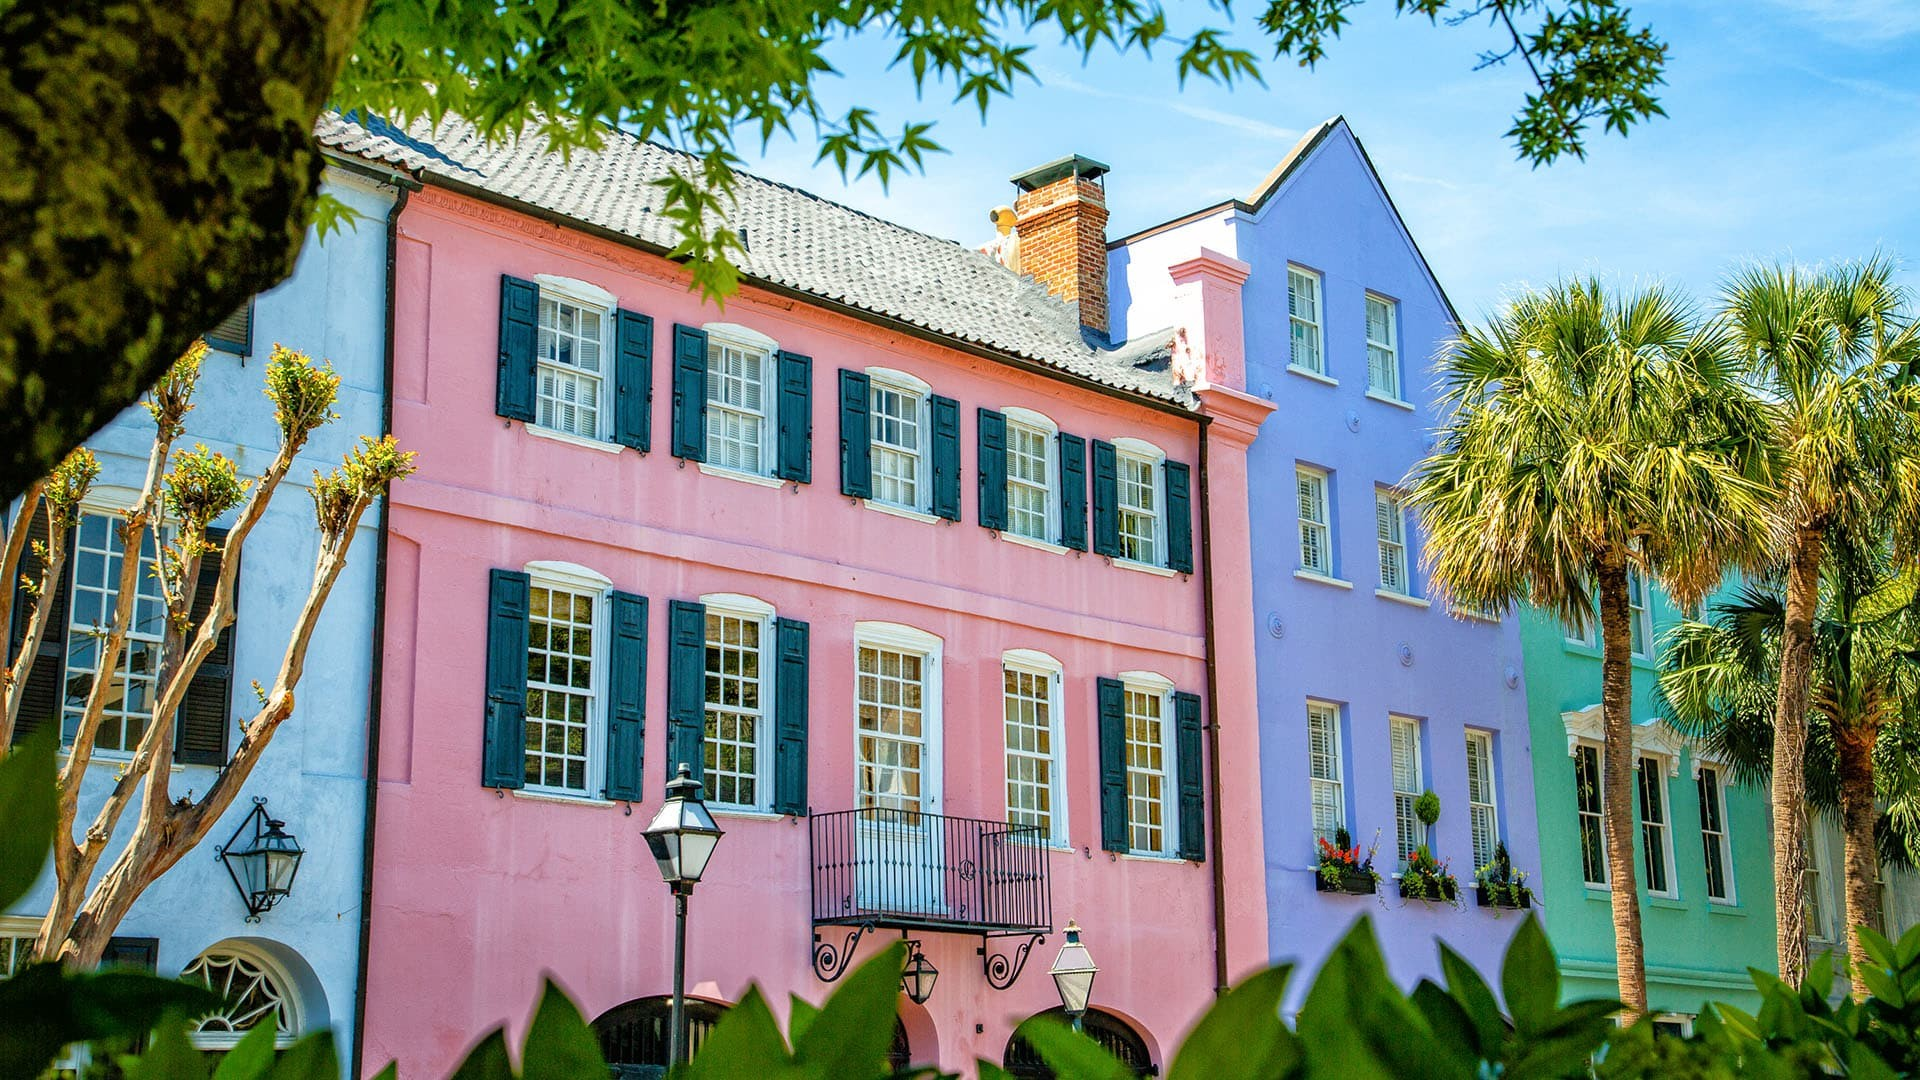 1920x1080 3 Can't-Miss Destinations in Charleston - Pursuits with Enterprise |  Enterprise Rent-A-Car